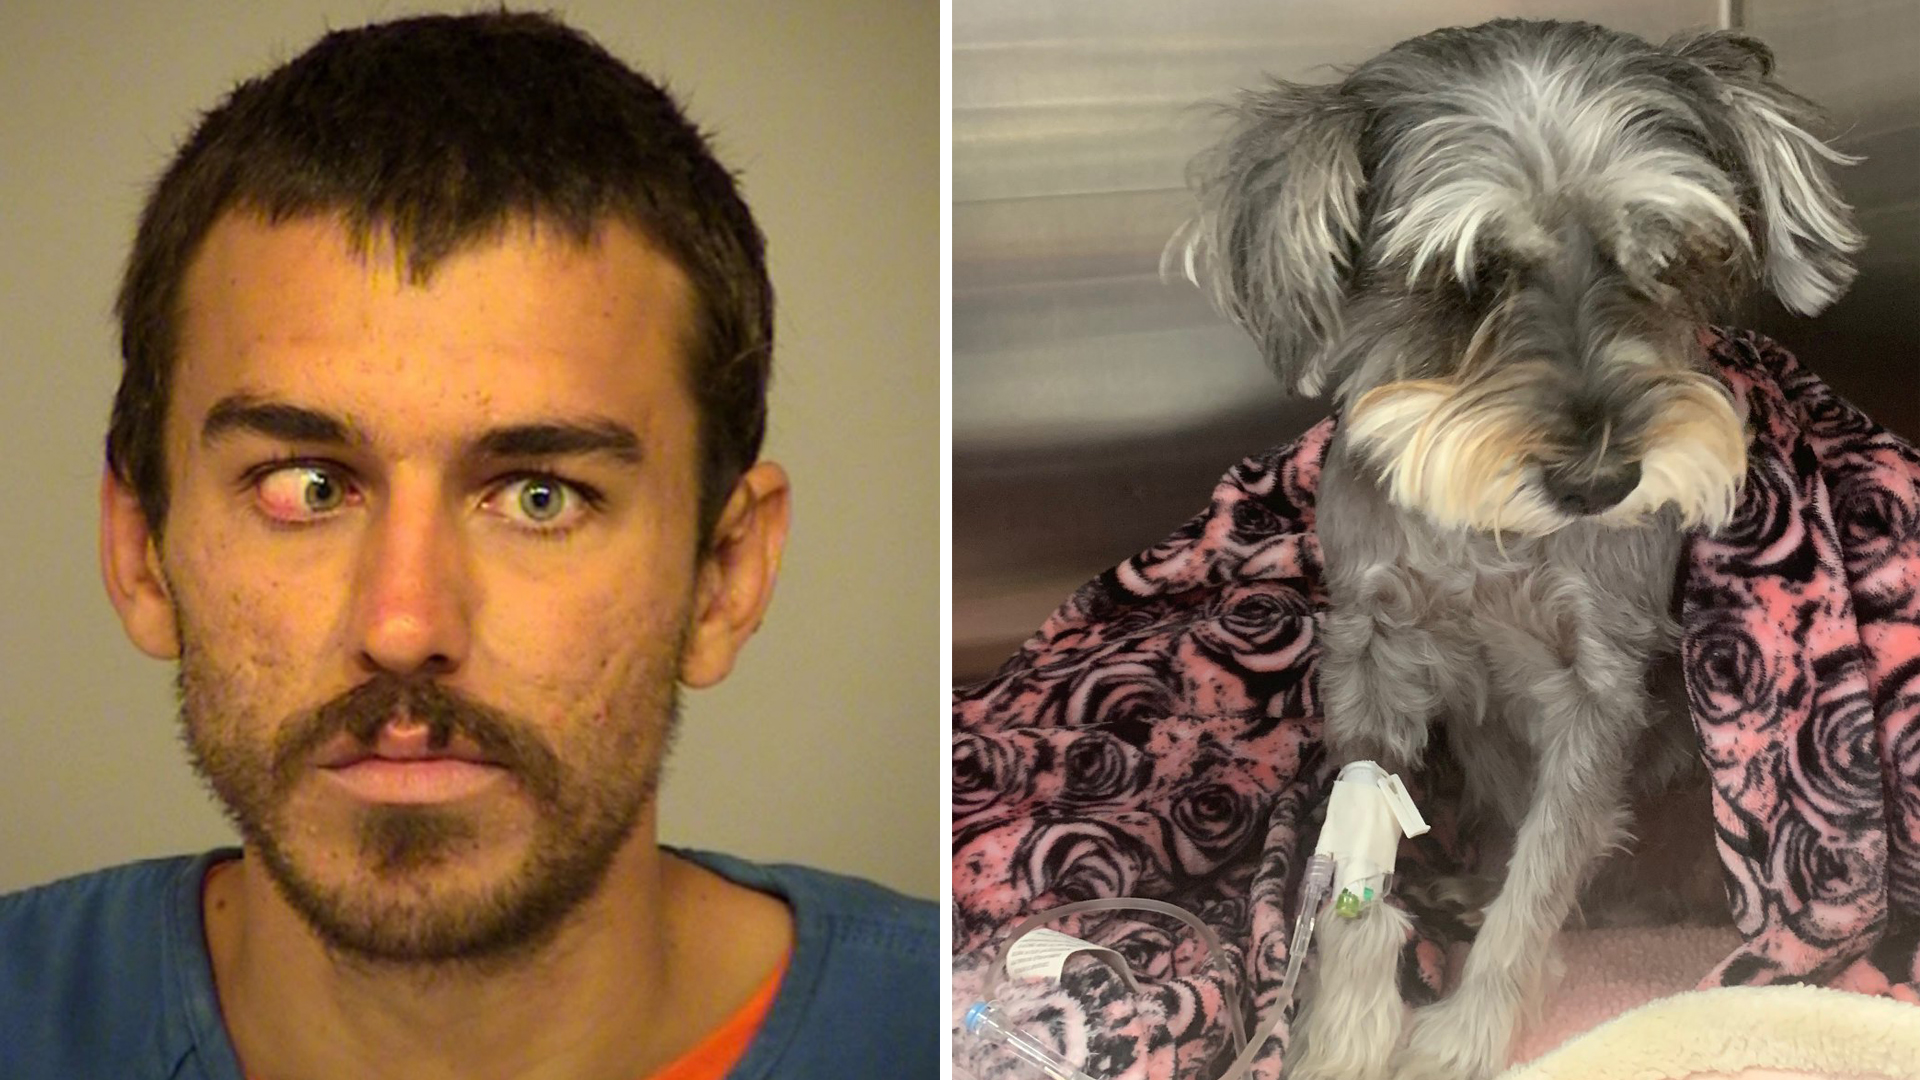 Dylan McTaggert and a dog named Sophie that he's suspected of kicking are seen in photos provided by the Port Hueneme Police Department on Aug. 12, 2019.